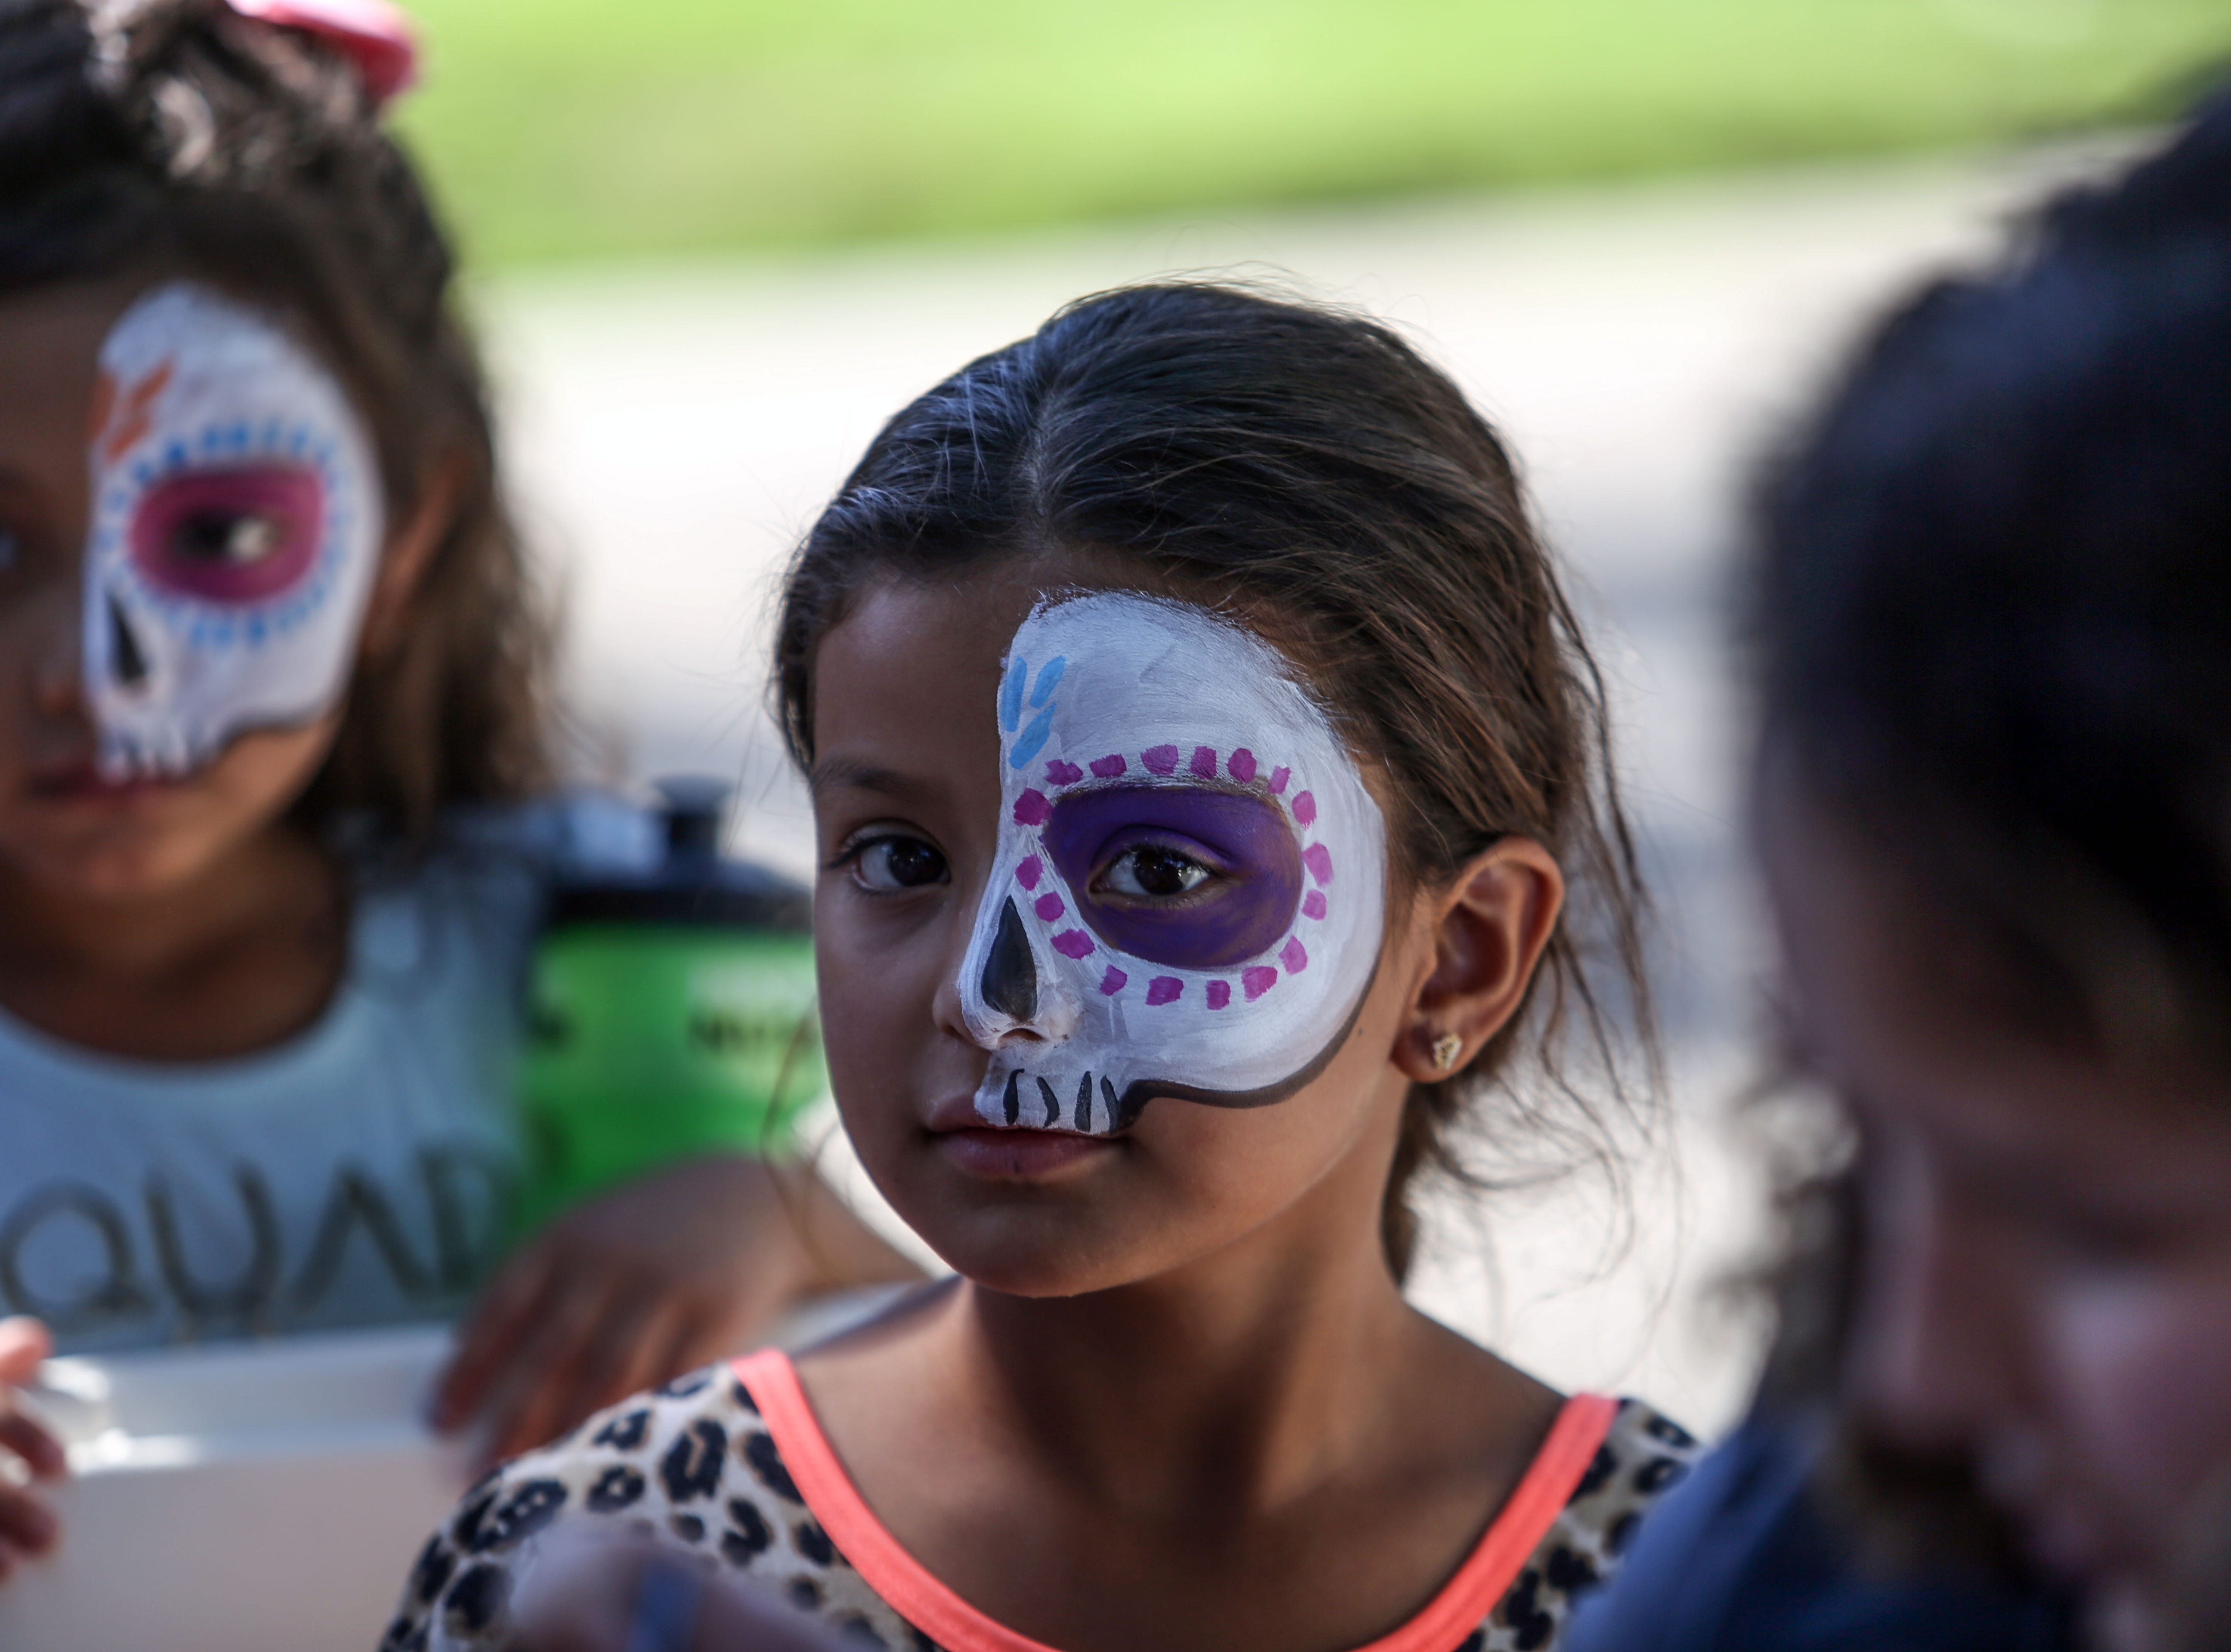 Carol Arias, 7, center, and Daisy Villegas, 4, have their faces painted during Cathedral City's annual Dia de los Muertos celebration at Desert Memorial Park cemetery on Saturday, October 27, 2018.